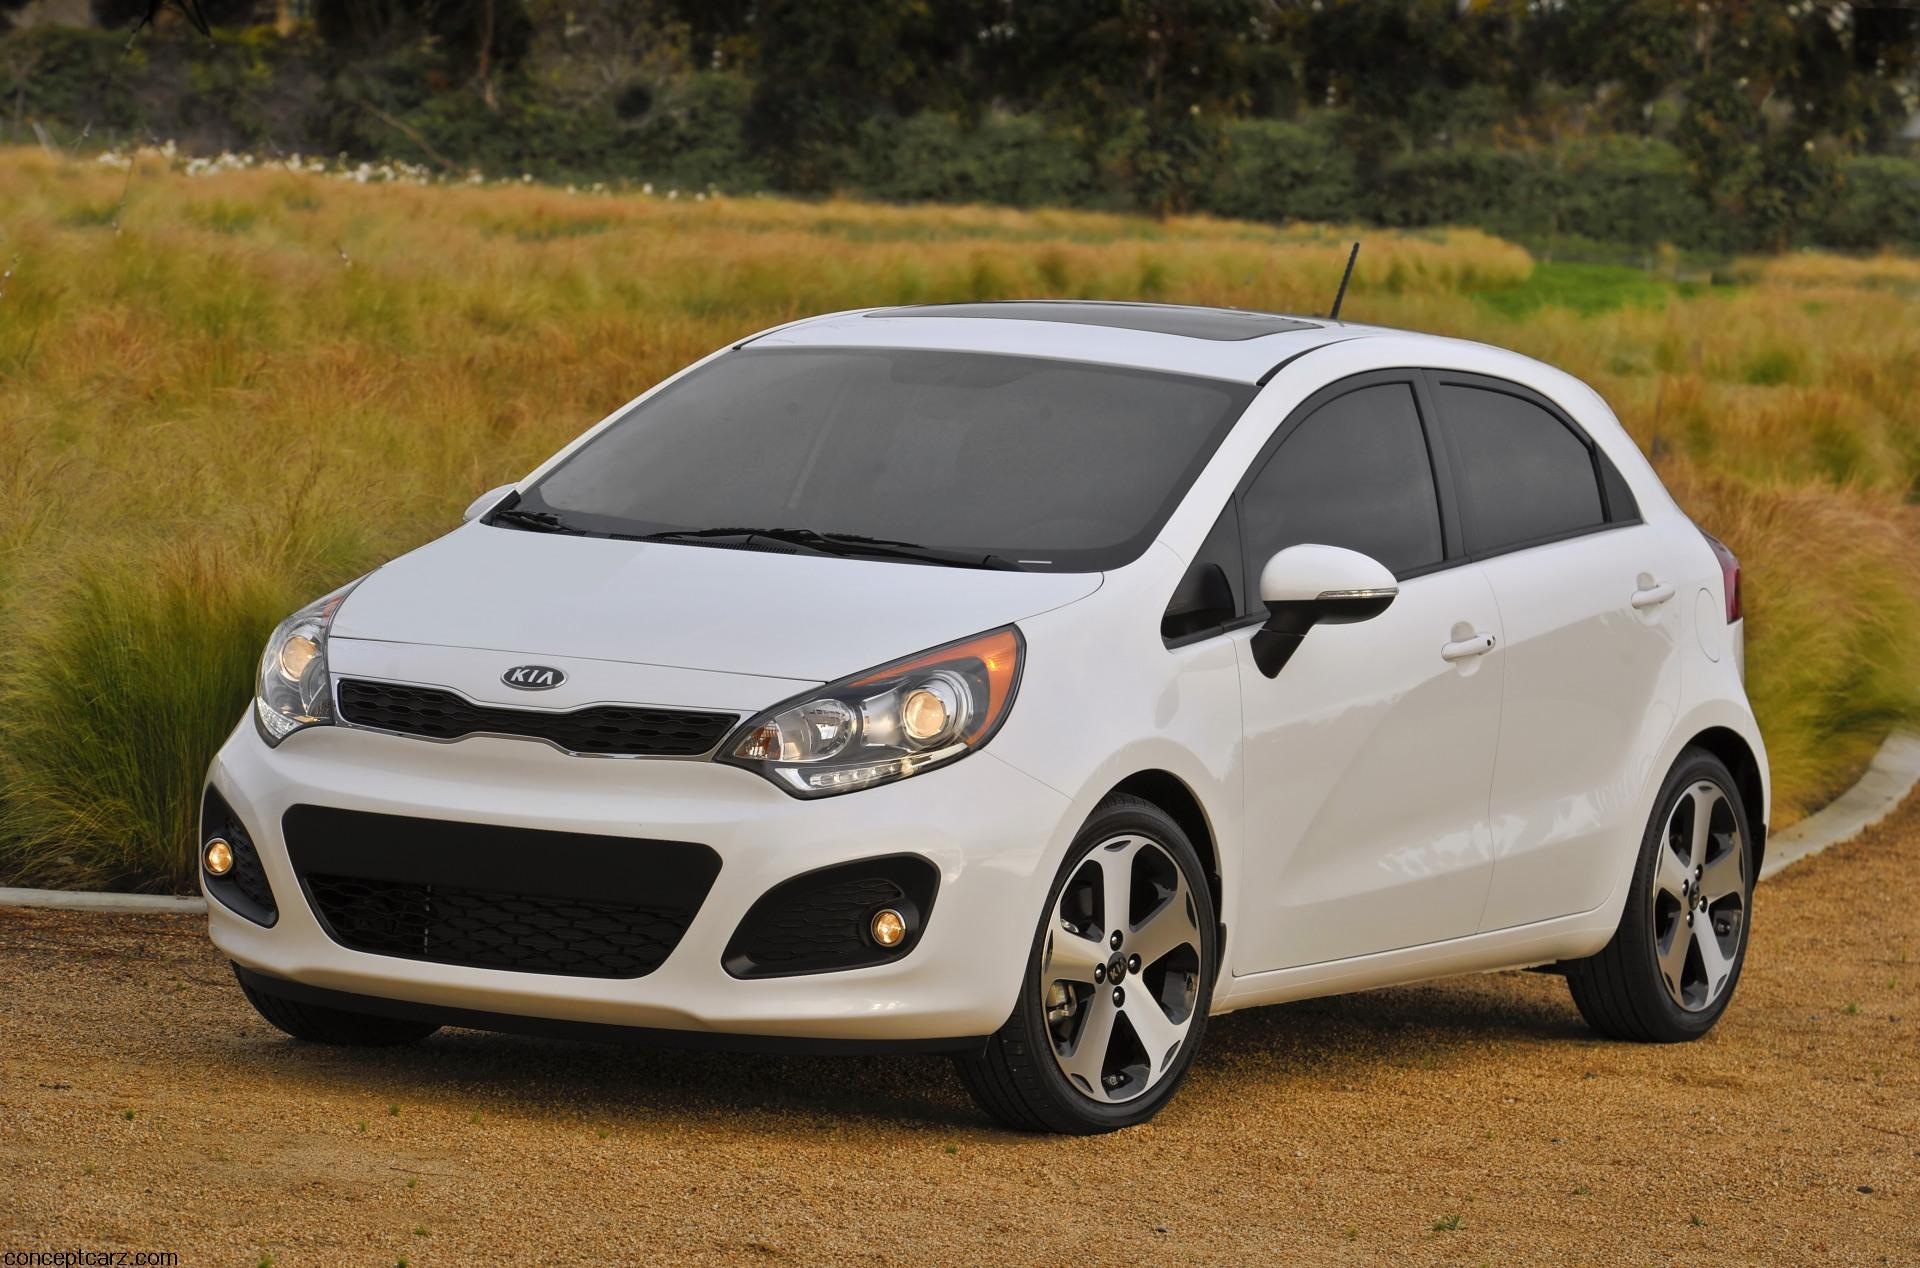 2012 Kia Rio5 Image. Photo 32 of 44